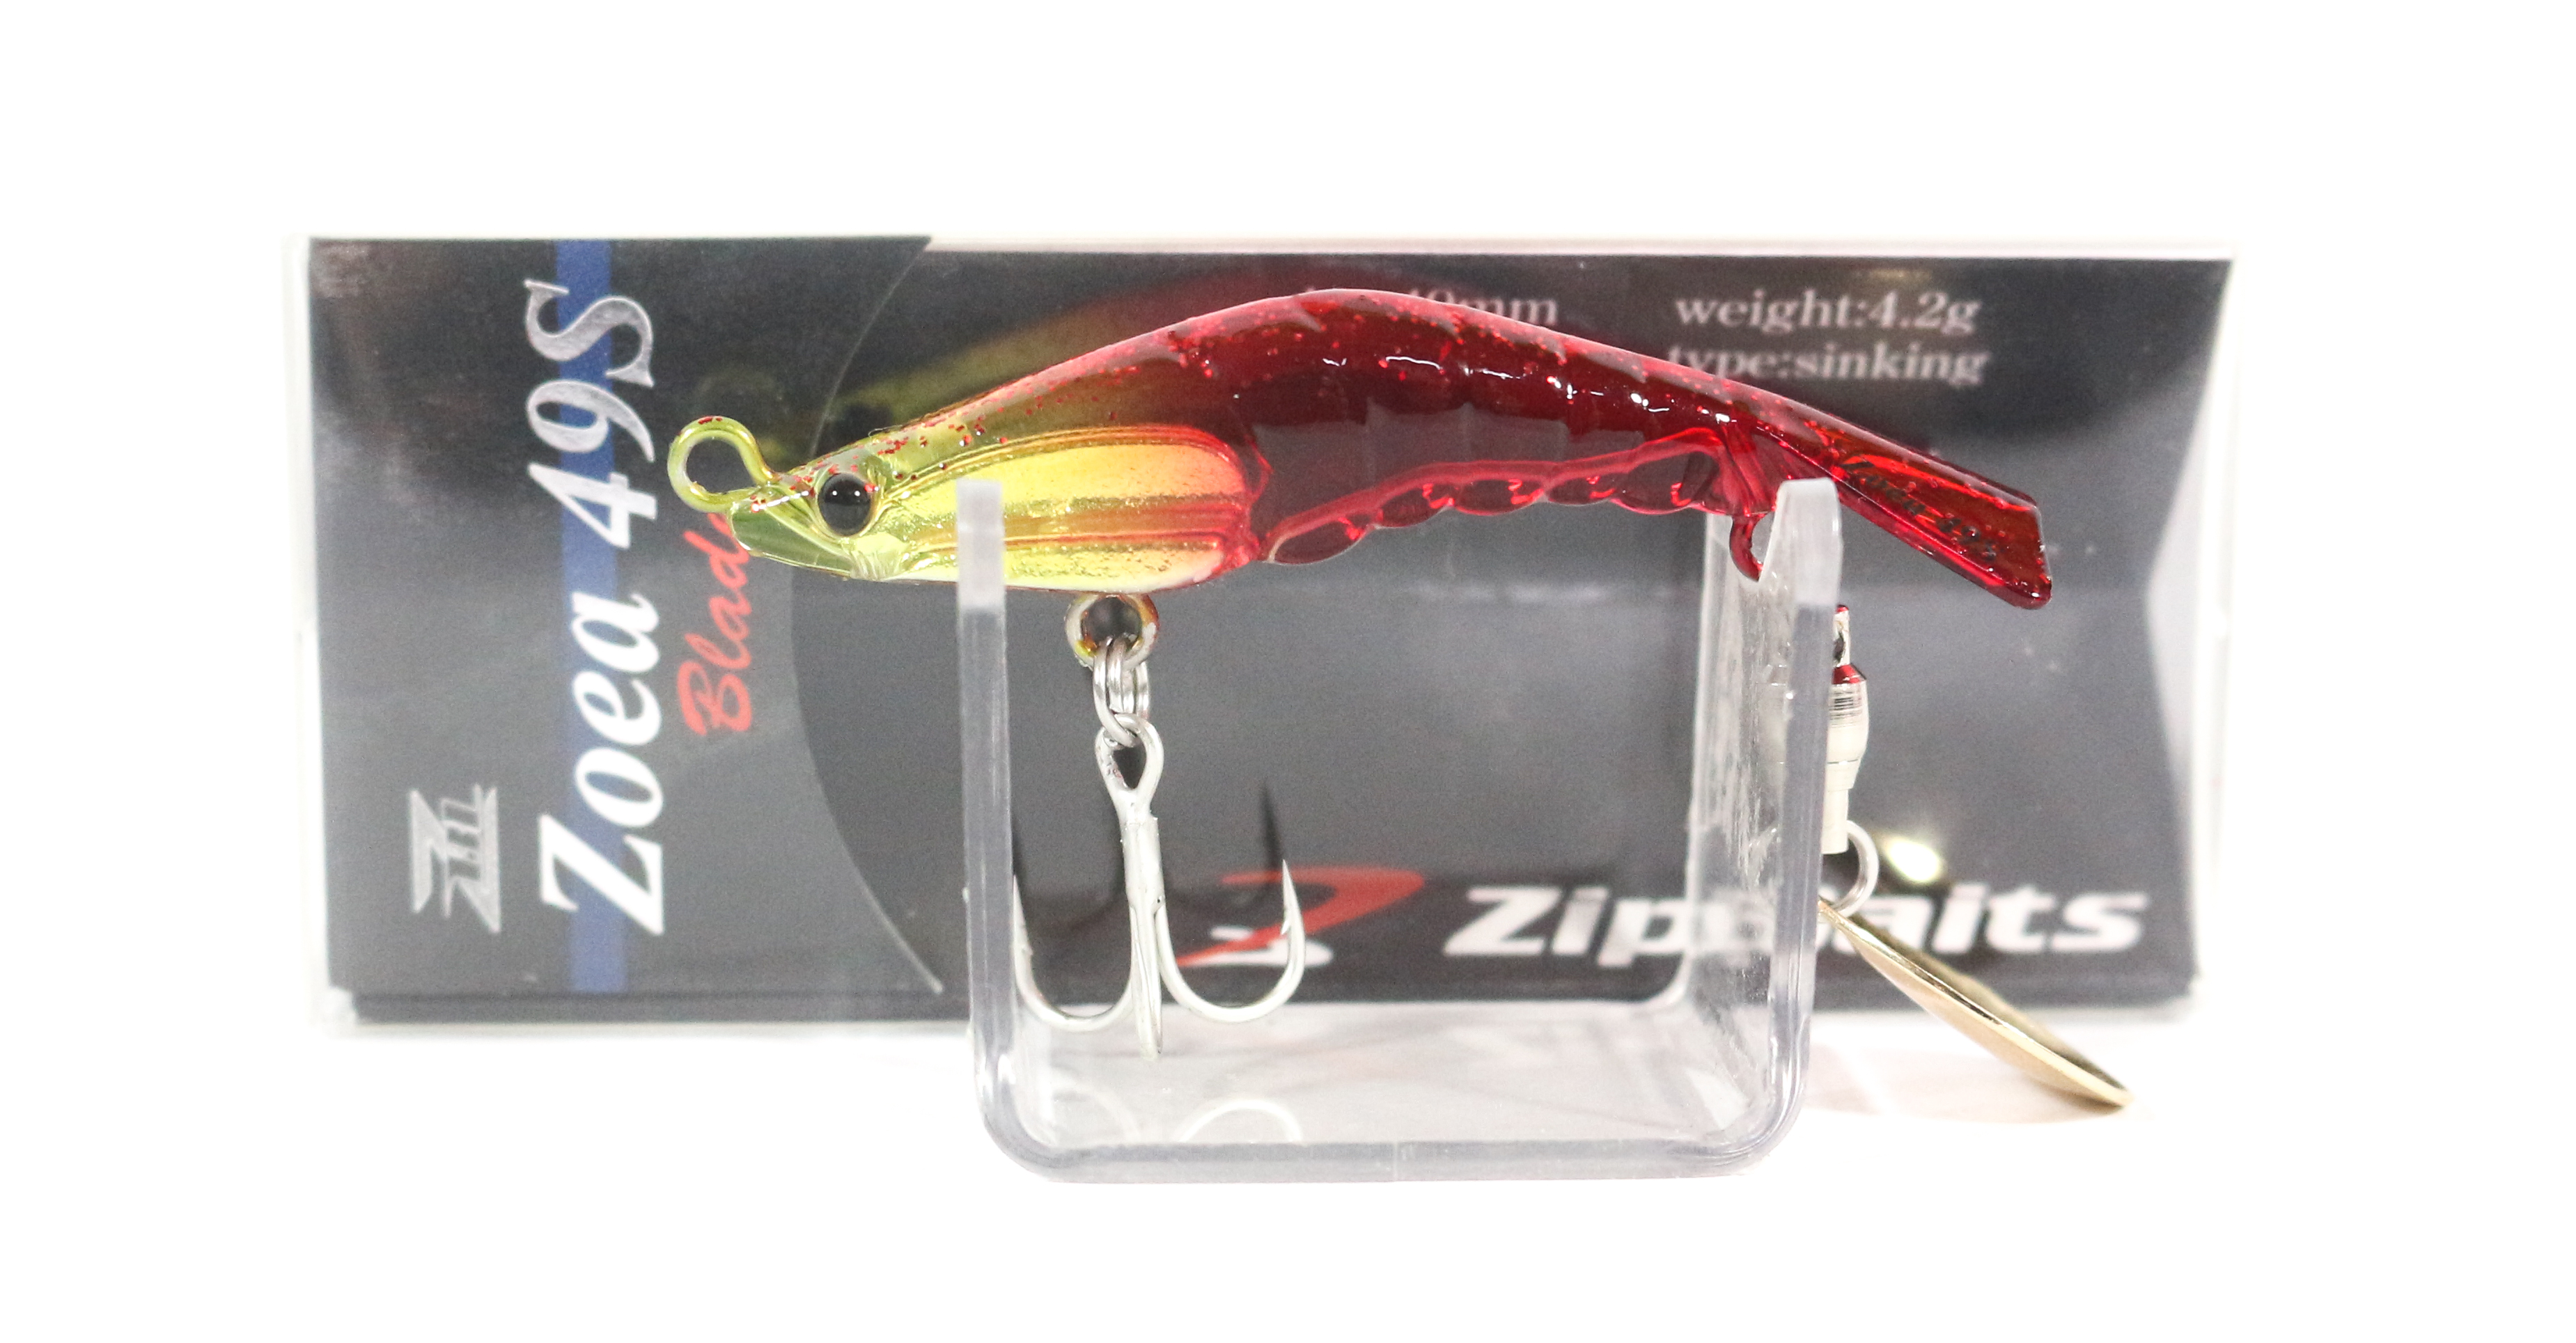 Zipbaits ZBL Zoea 49S Blade Sinking Lure 239 (7172)